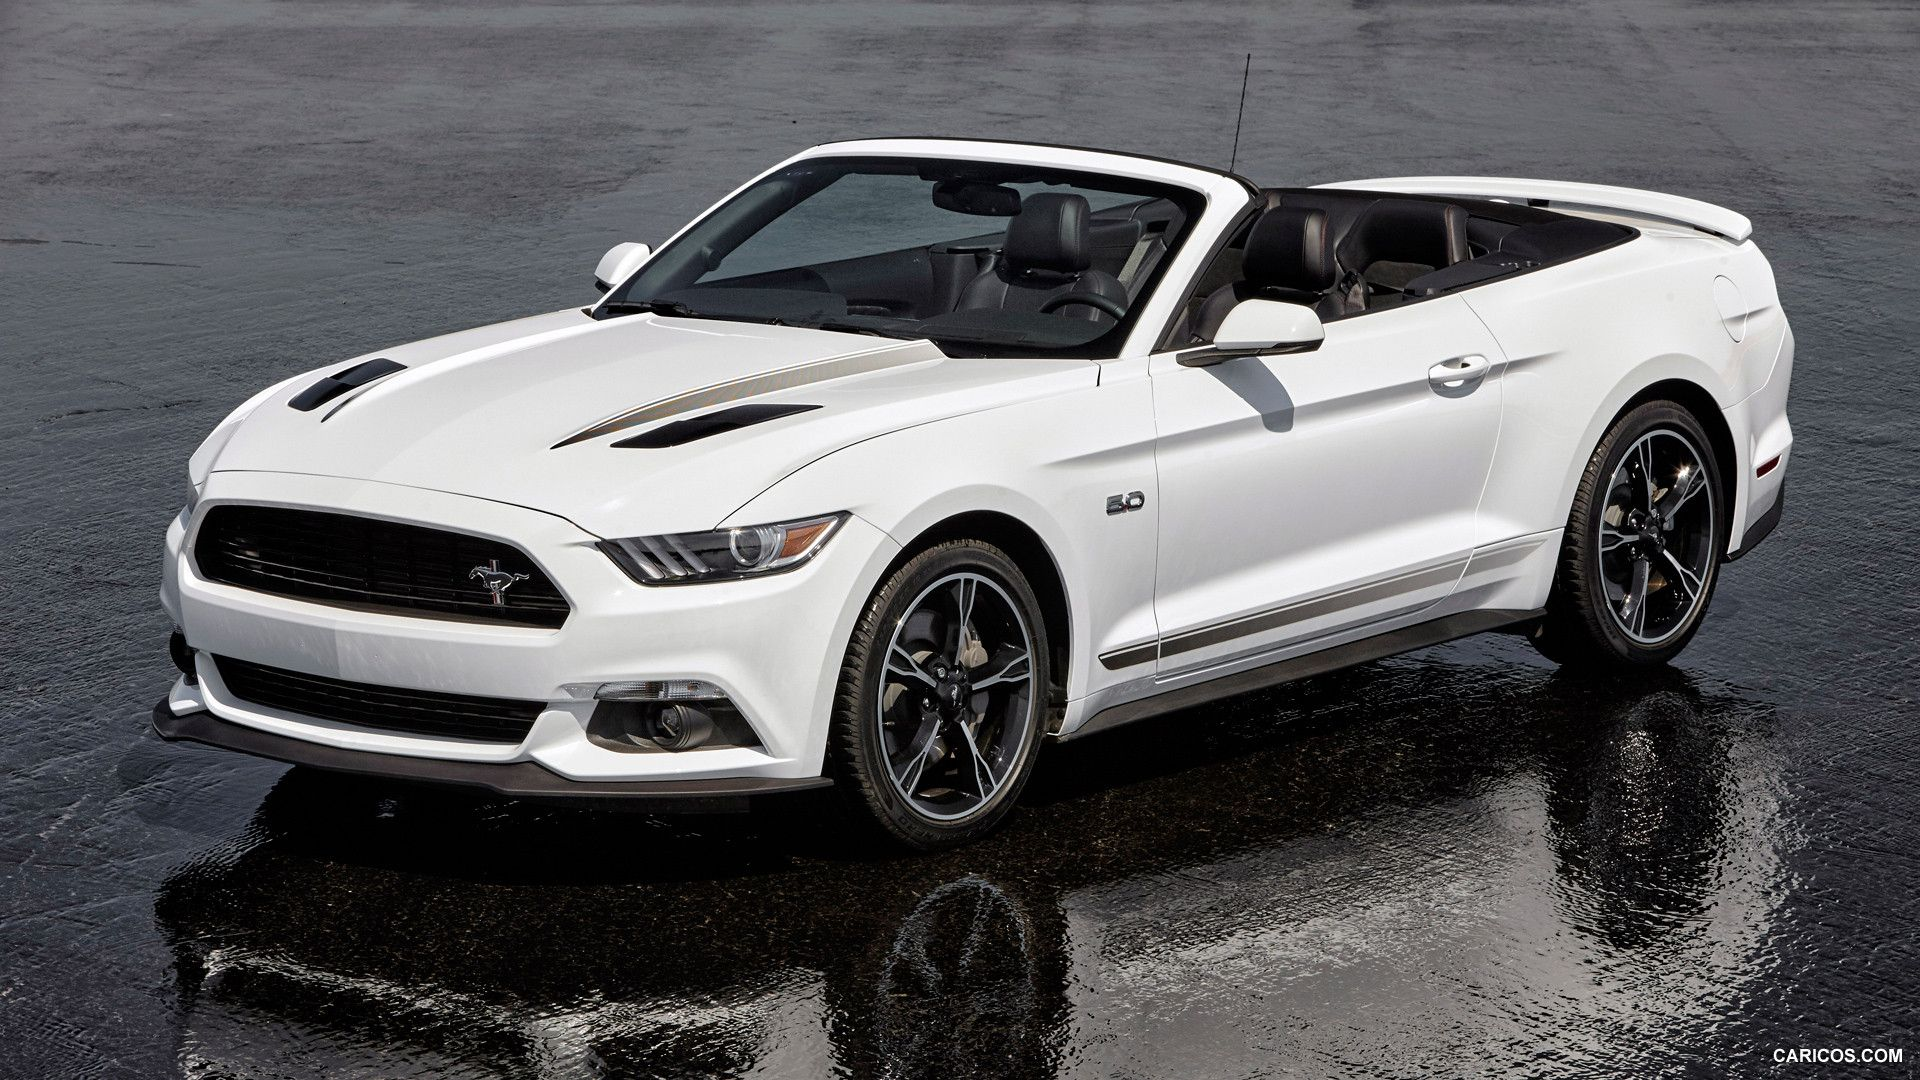 Gallery of ford mustang images